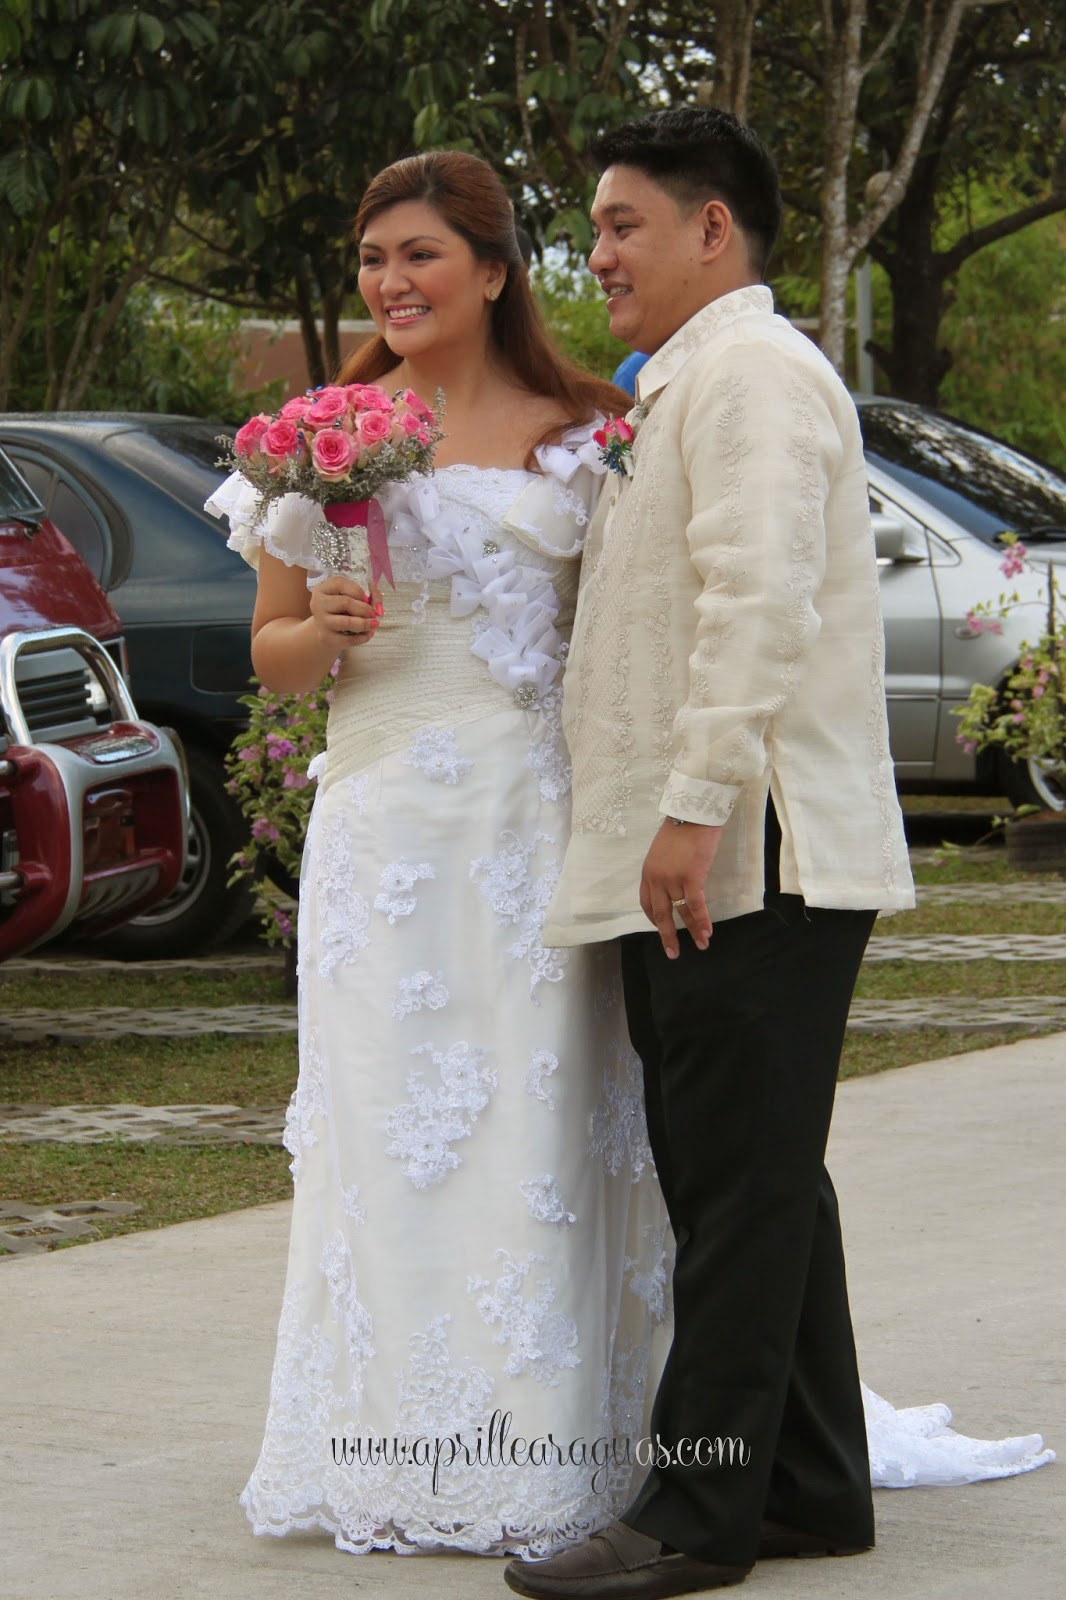 Wedding Gift Ideas For Filipino Couple : ... Pinoy-style welcomed the couple before they proceeded to the reception